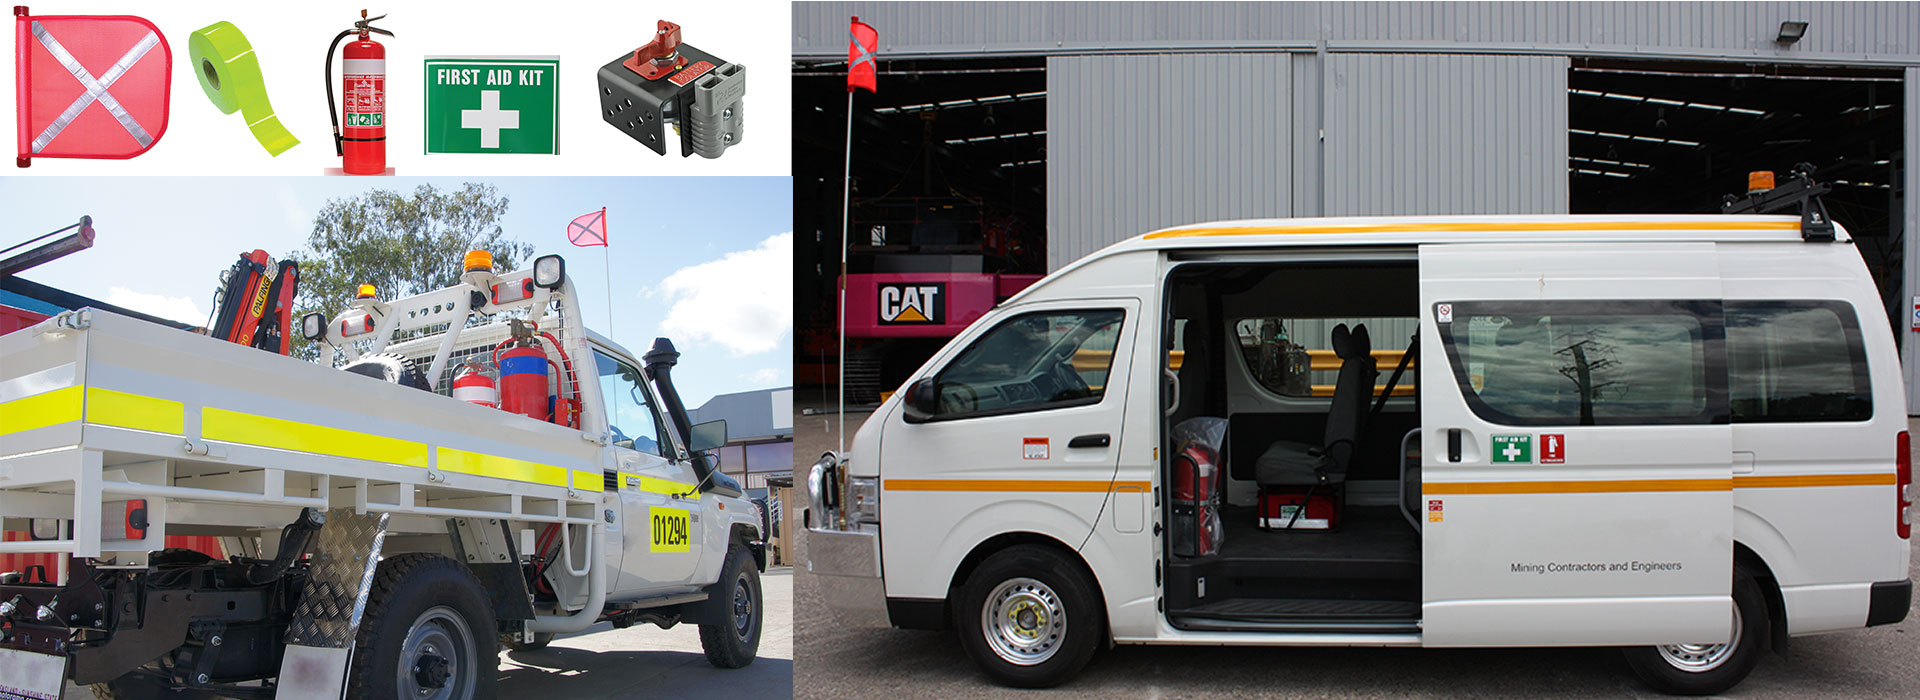 Vehicle safety - site product range